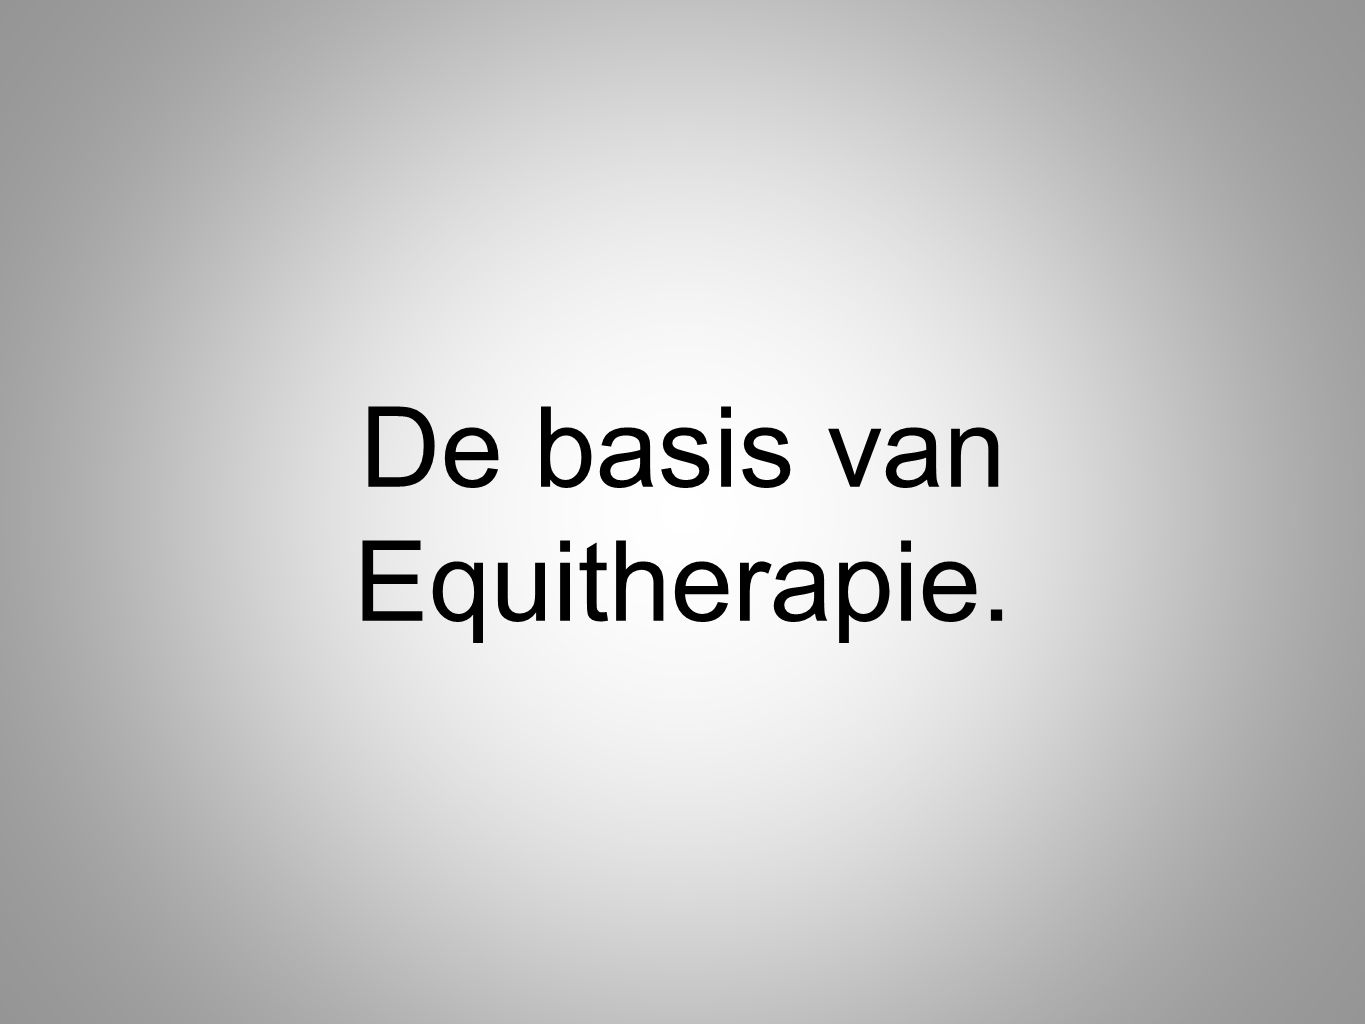 De basis van Equitherapie.